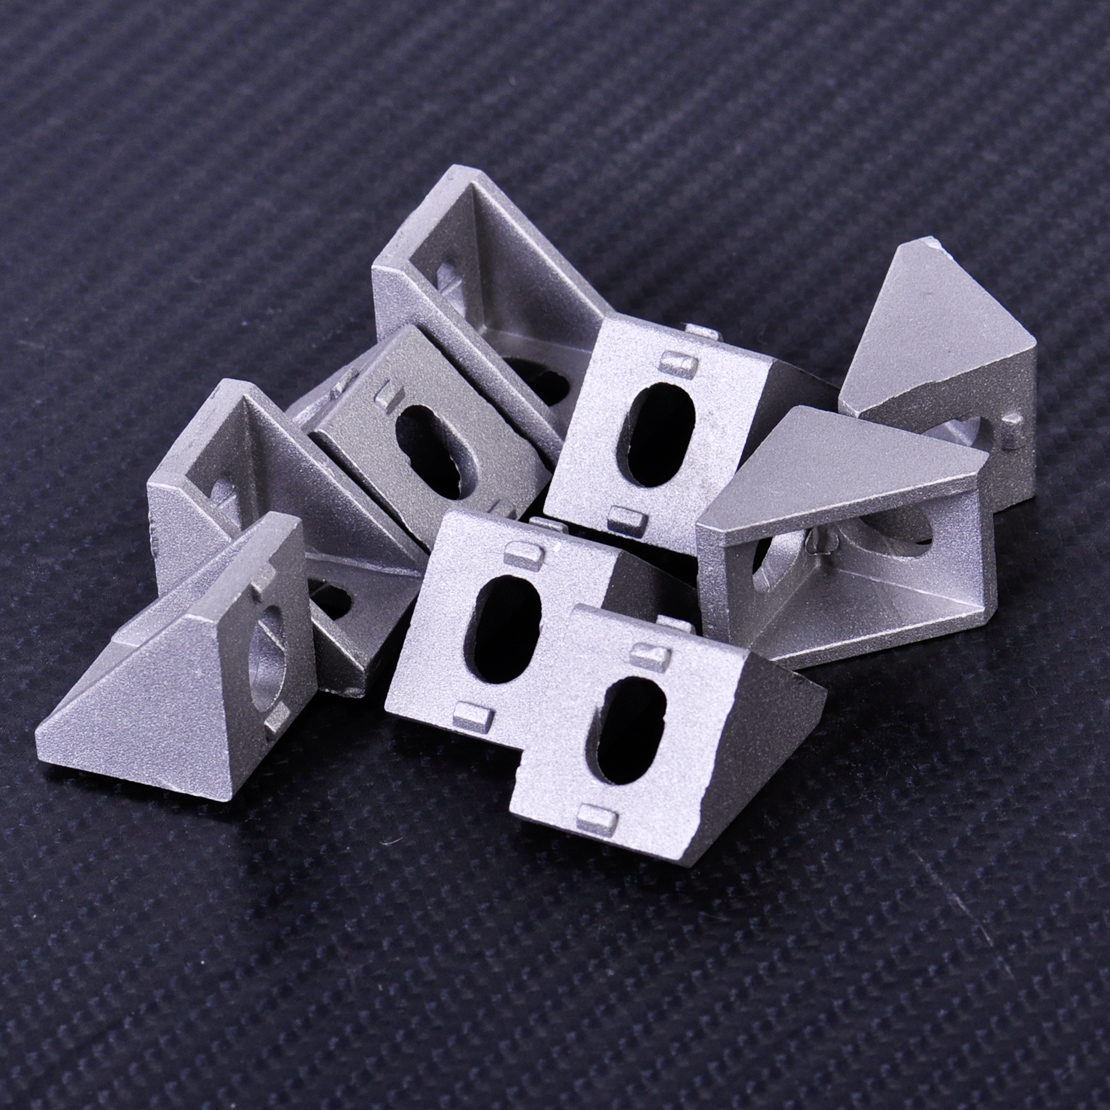 10Pcs 90 Degree Durable Grey Aluminum Corner Bracket Solid Cast Double Side L Shape Joint Brace Right Angle 3 pcs 125mm x 125mm corner brace joint right angle bracket